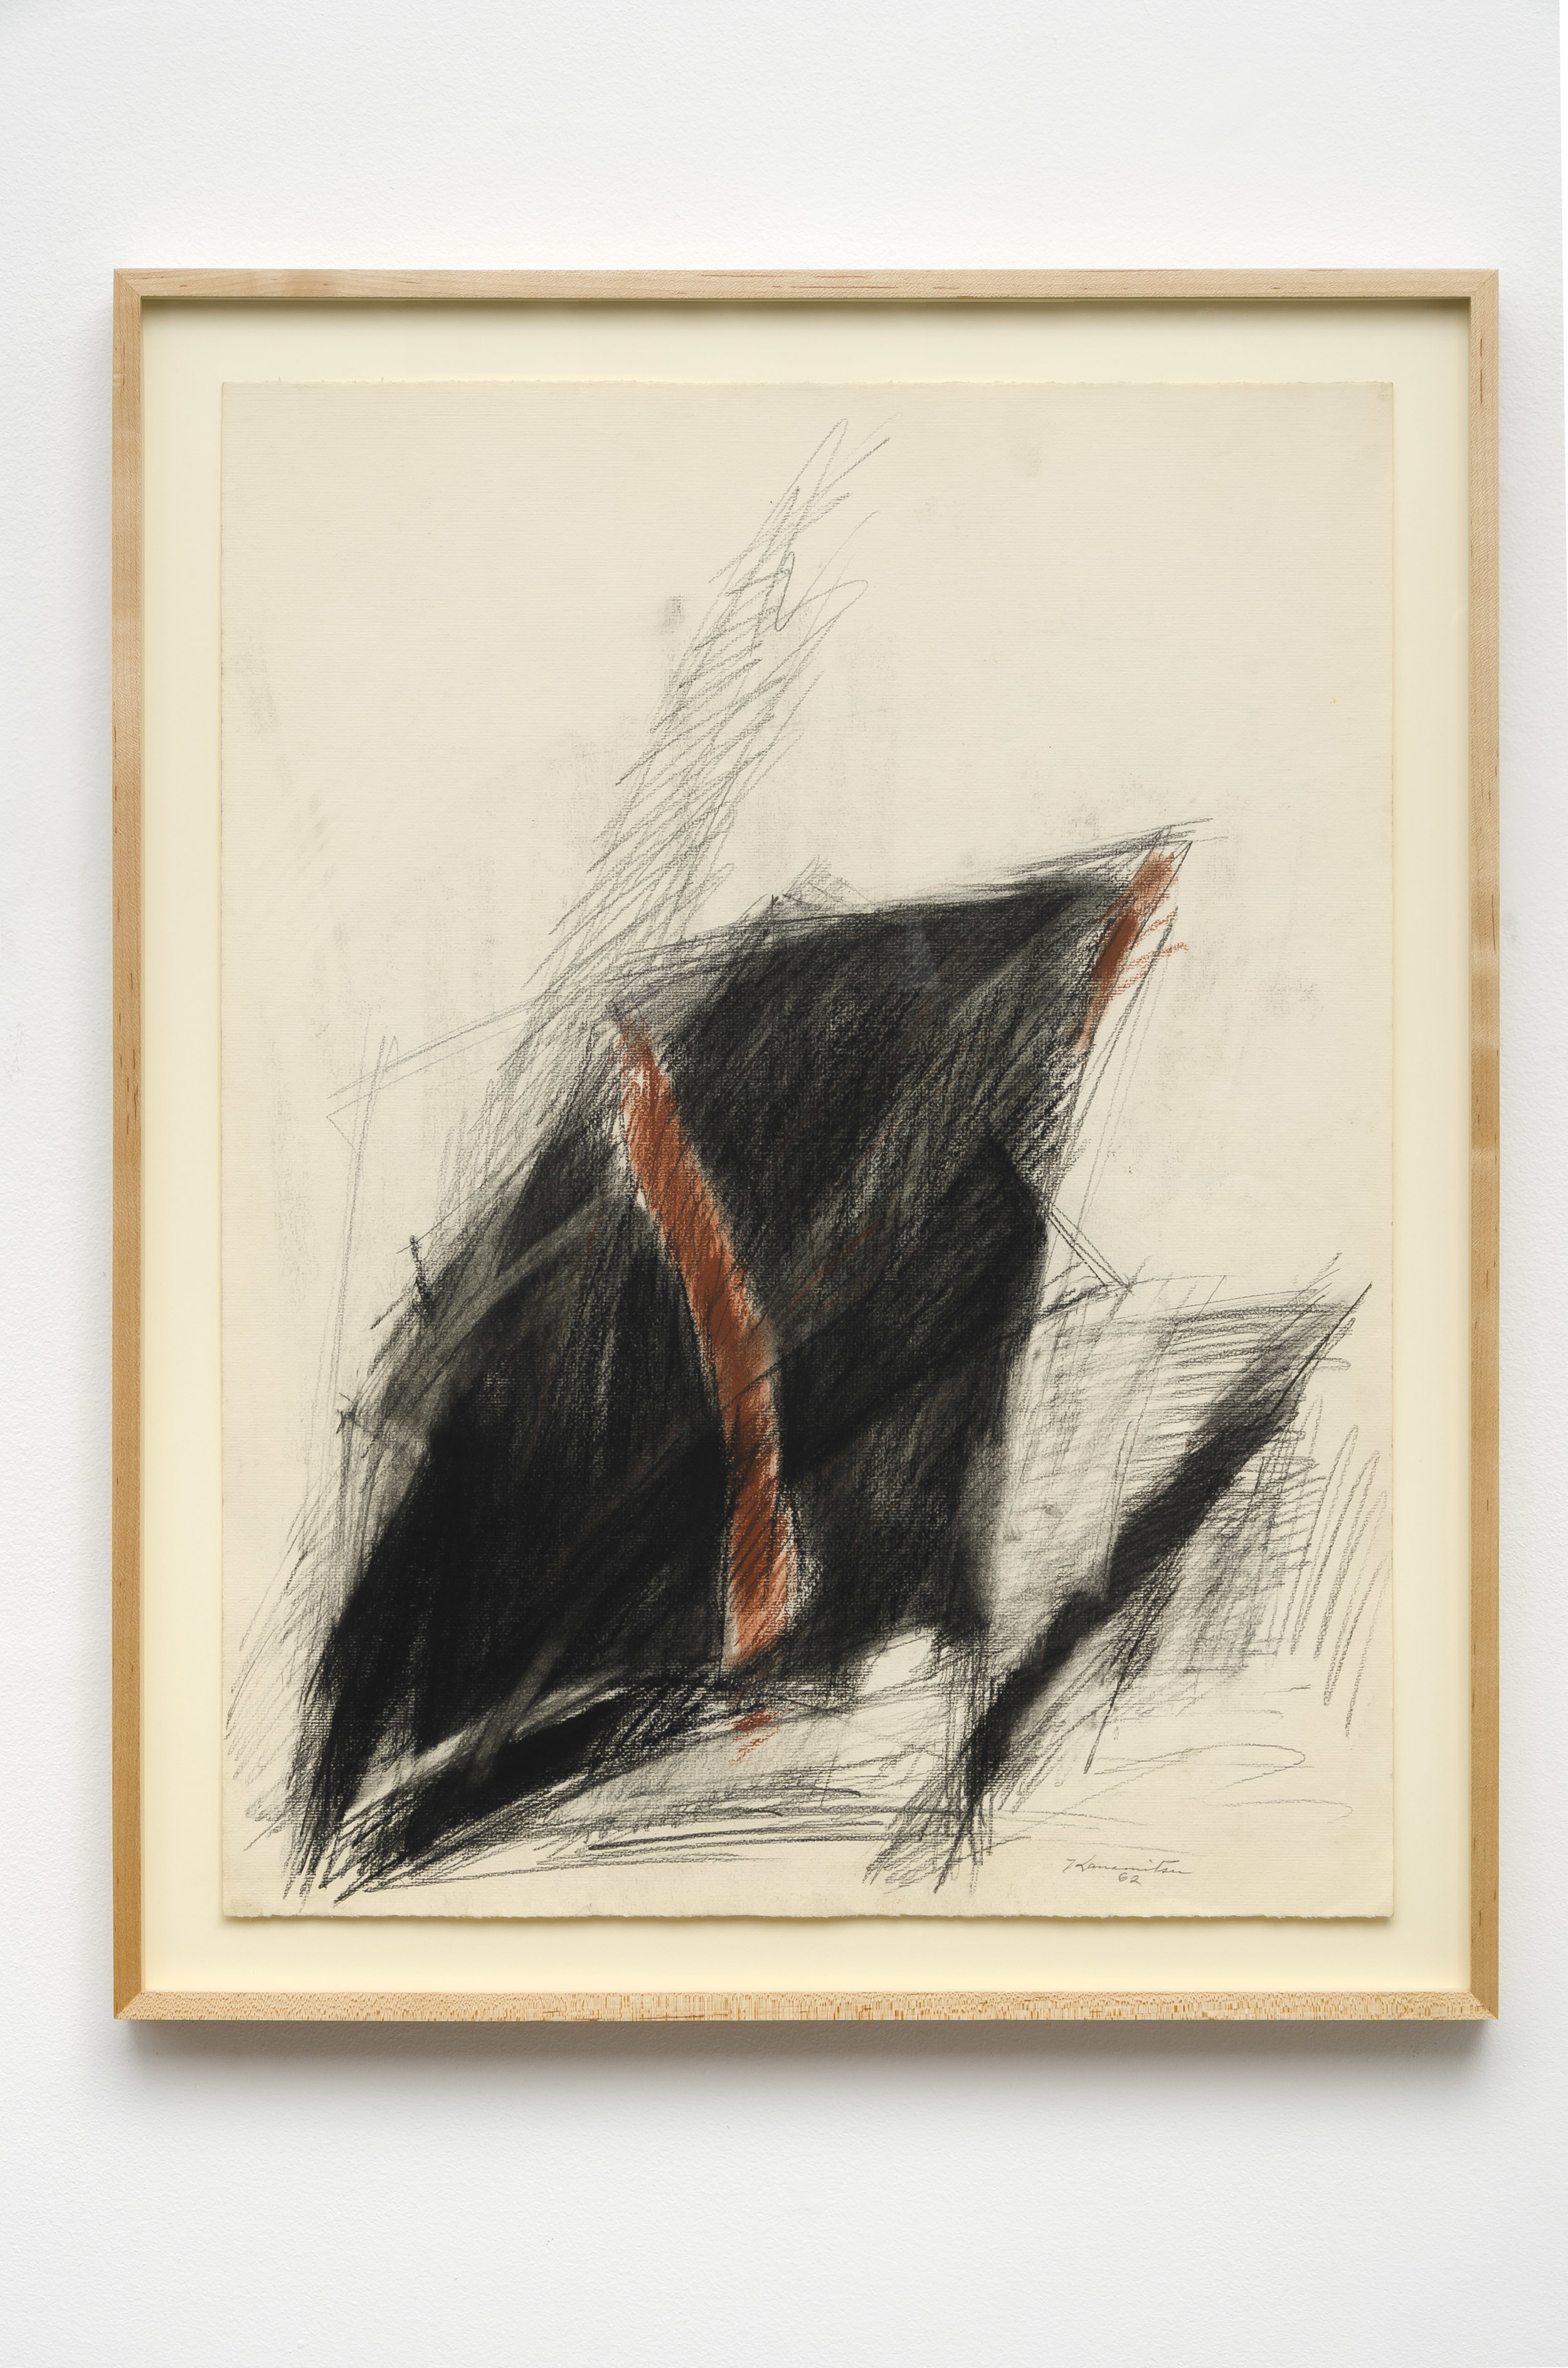 Untitled   1962  graphite and pastel on paper  30 x 23.5 inches, 76.2 x 59.7 centimeters